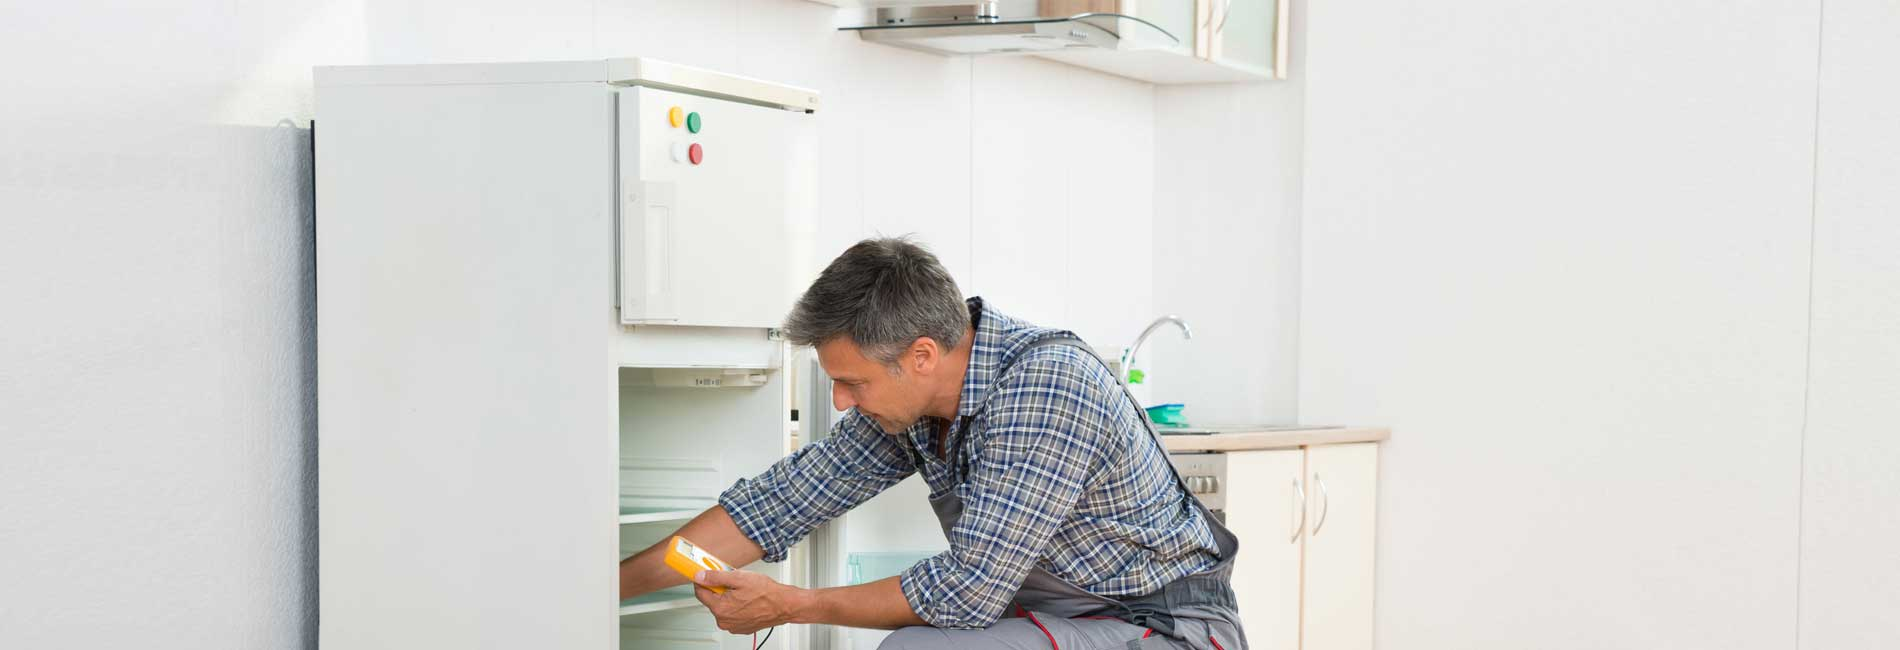 Kelvinator Fridge Repair in Tambaram